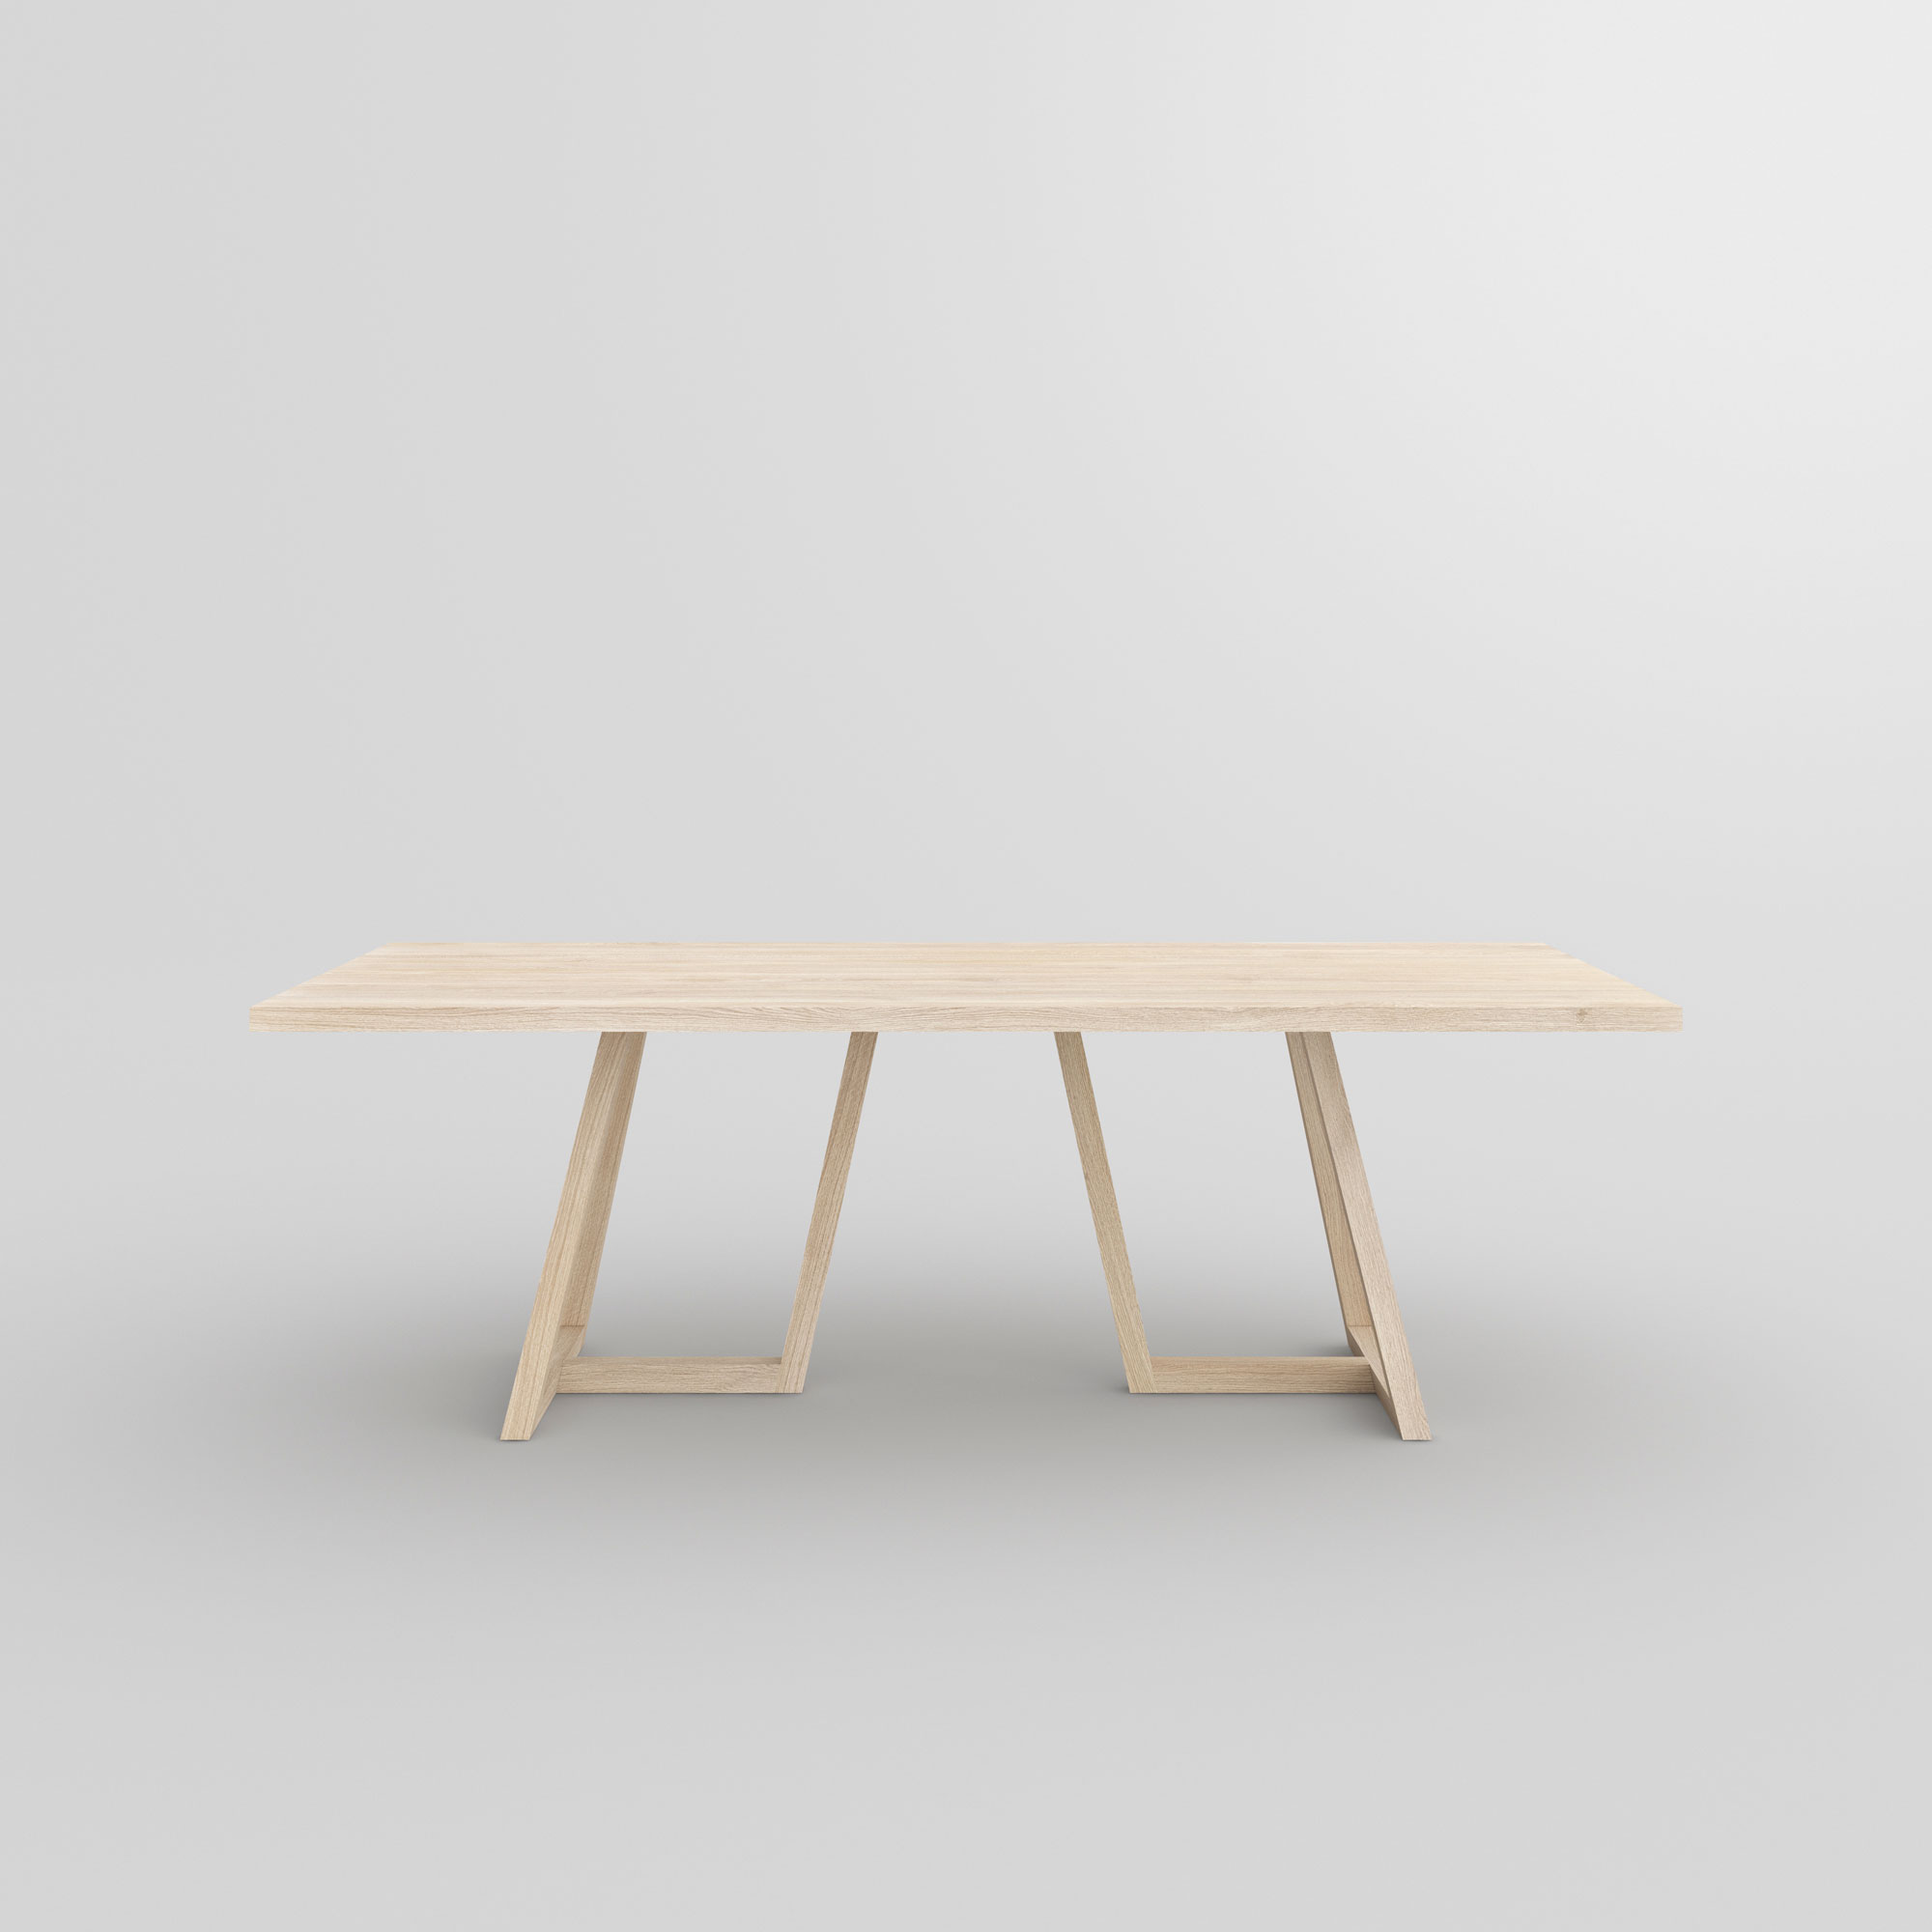 Designer Solid Wood Table MARGO custom made in solid wood by MODUM